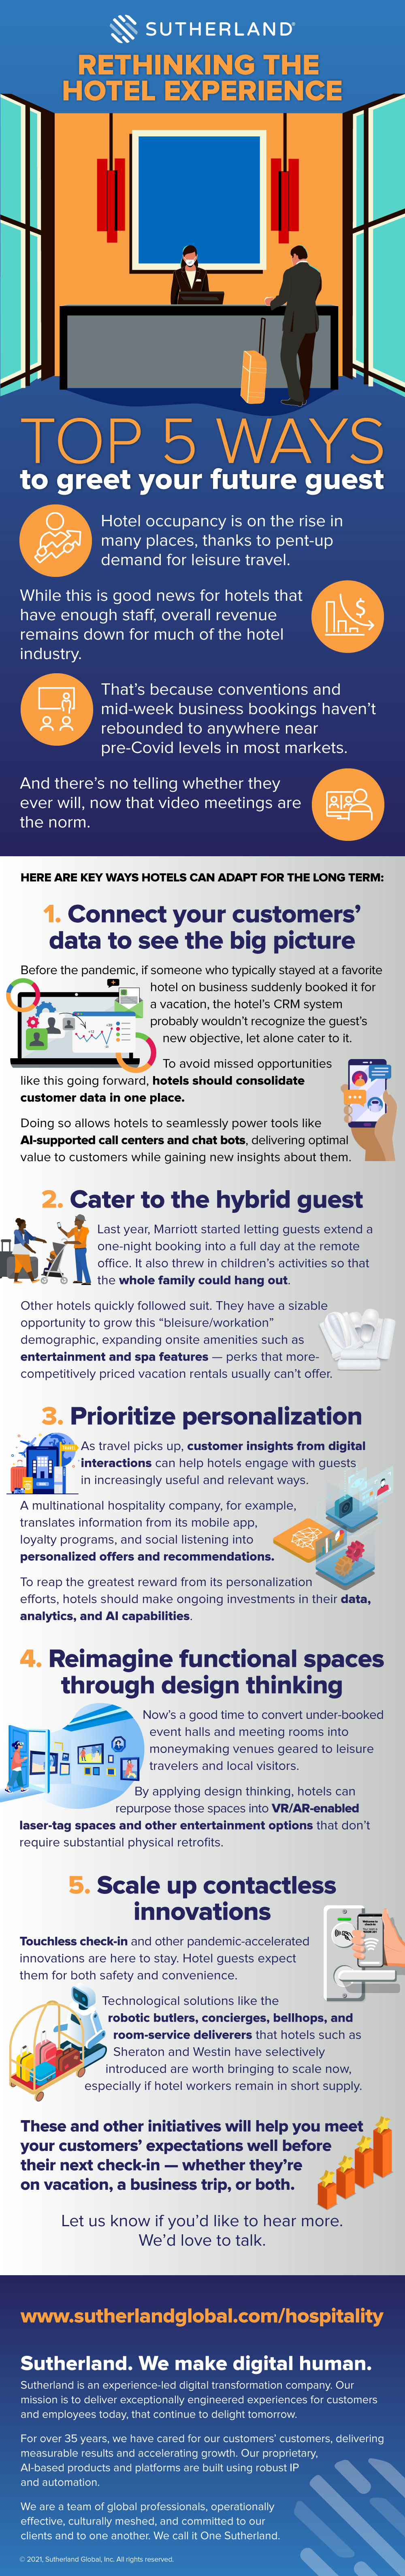 Rethinking the Hotel Experience: Top 5 Ways To greet your future guest